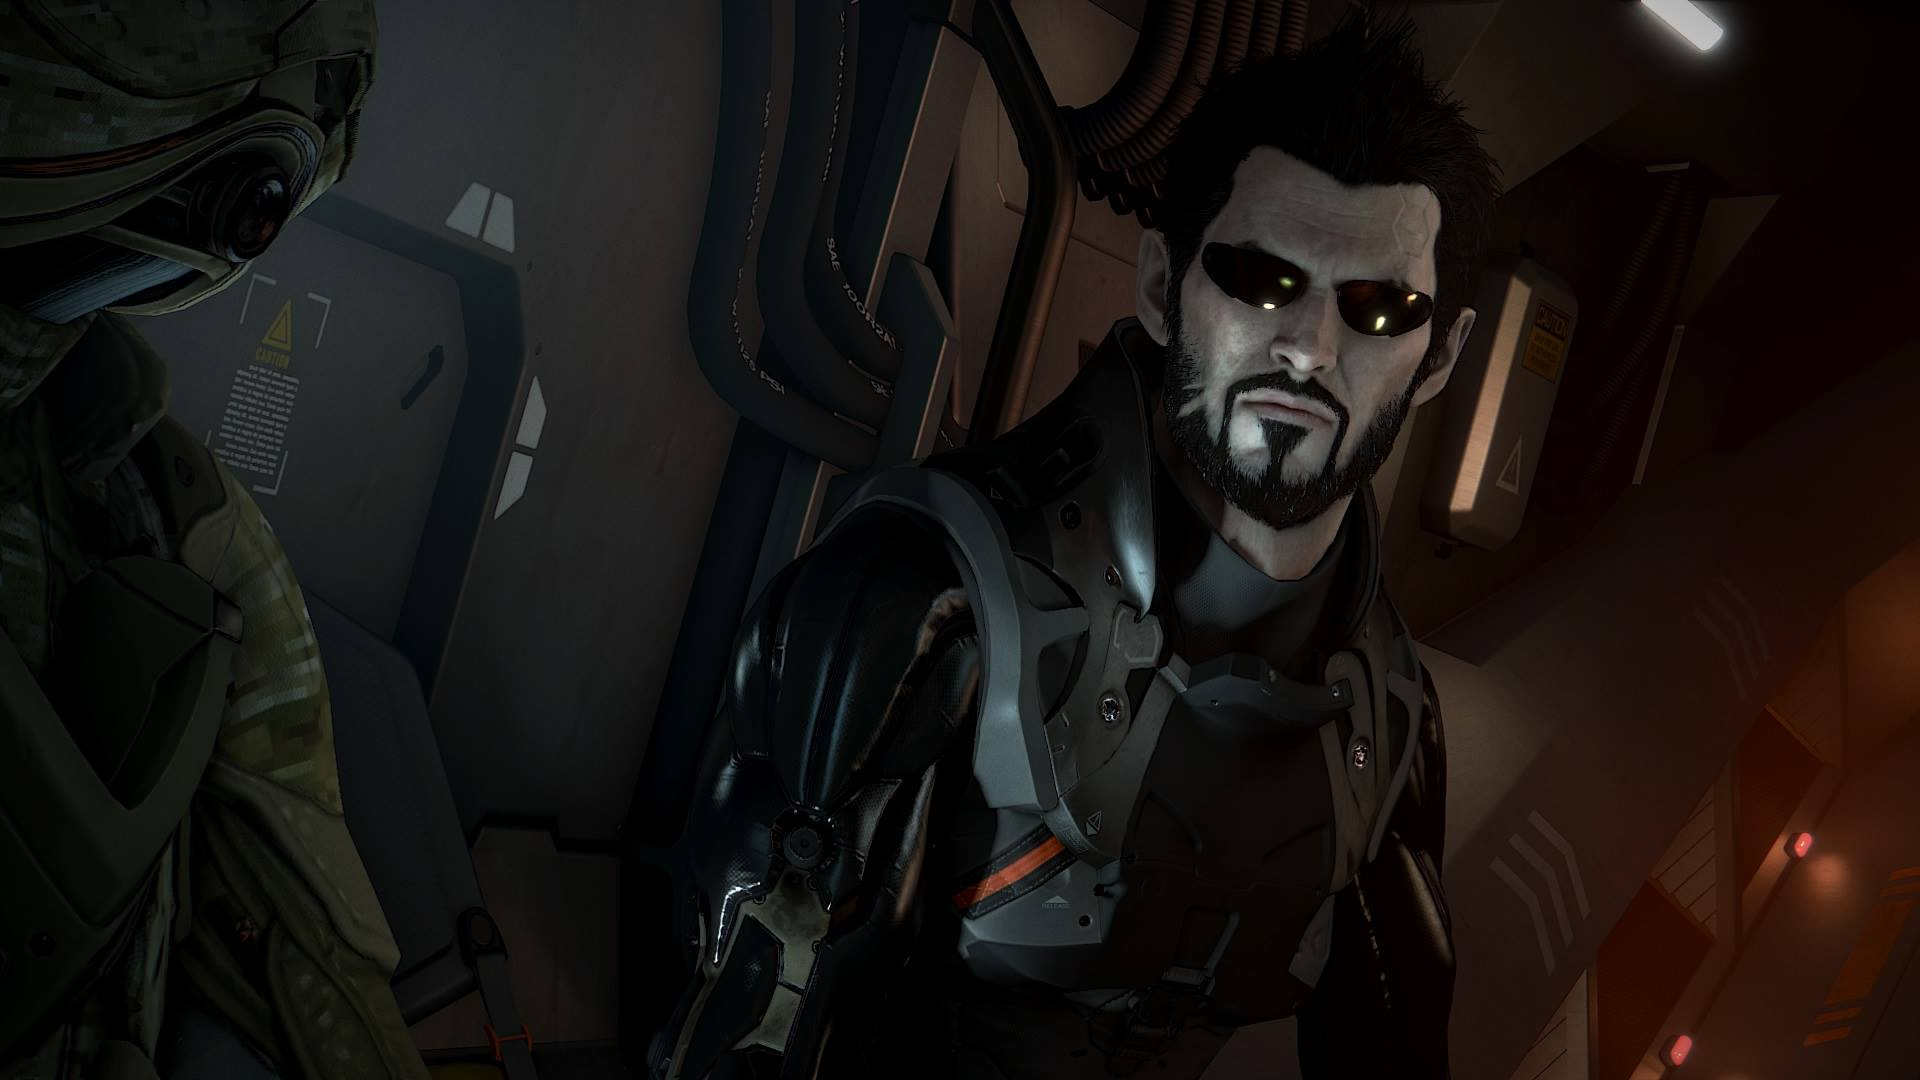 Screenshot from the Playstation 4 version of Deus Ex: Mankind Divided.